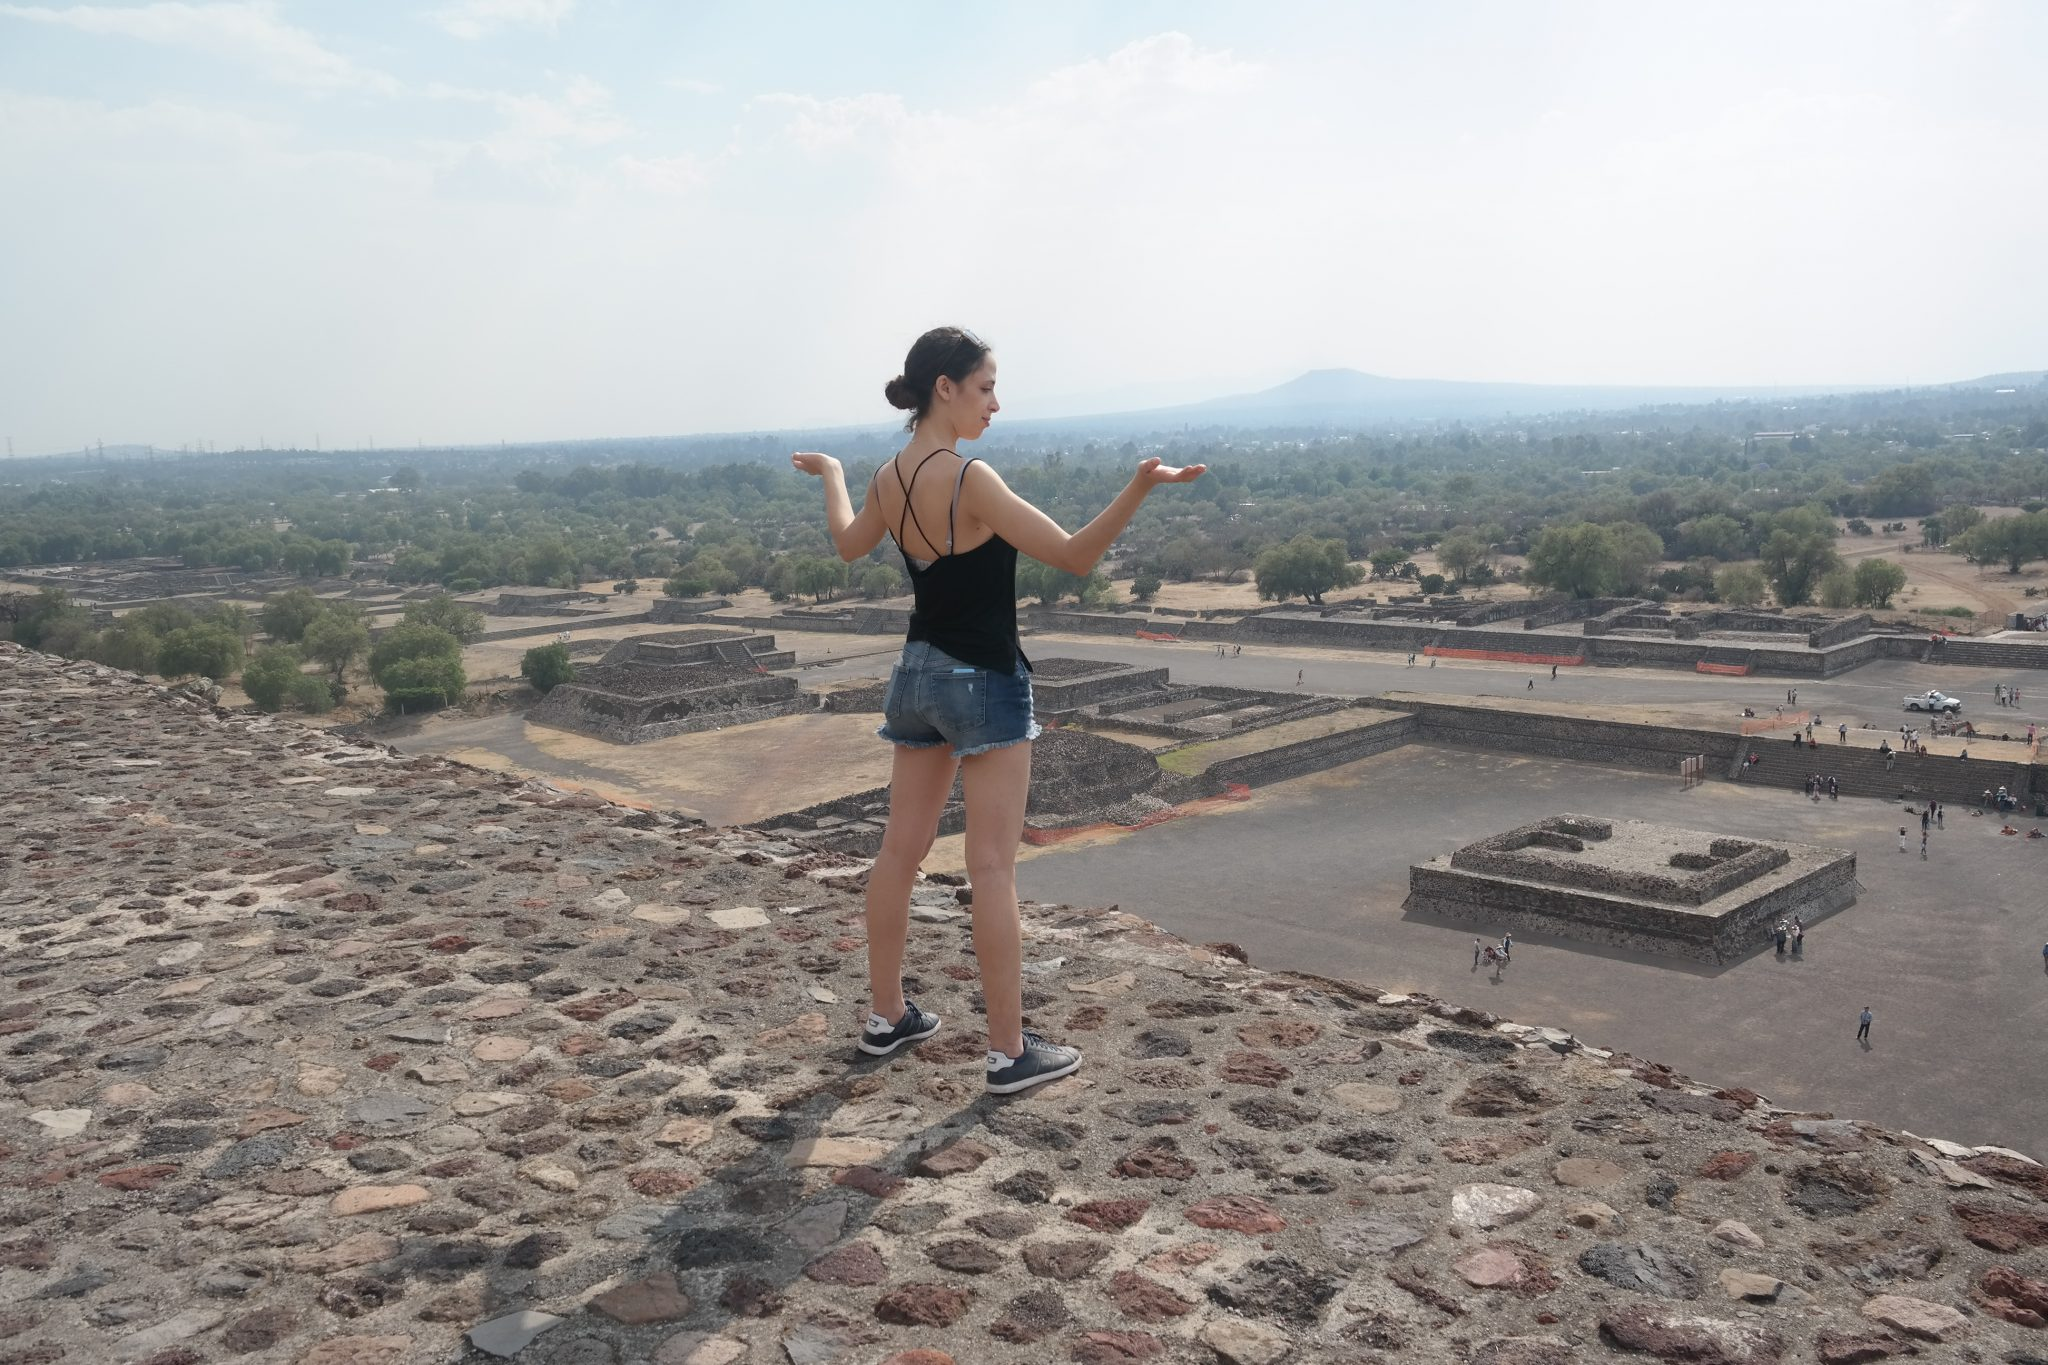 Teotihuacán – The City of Gods